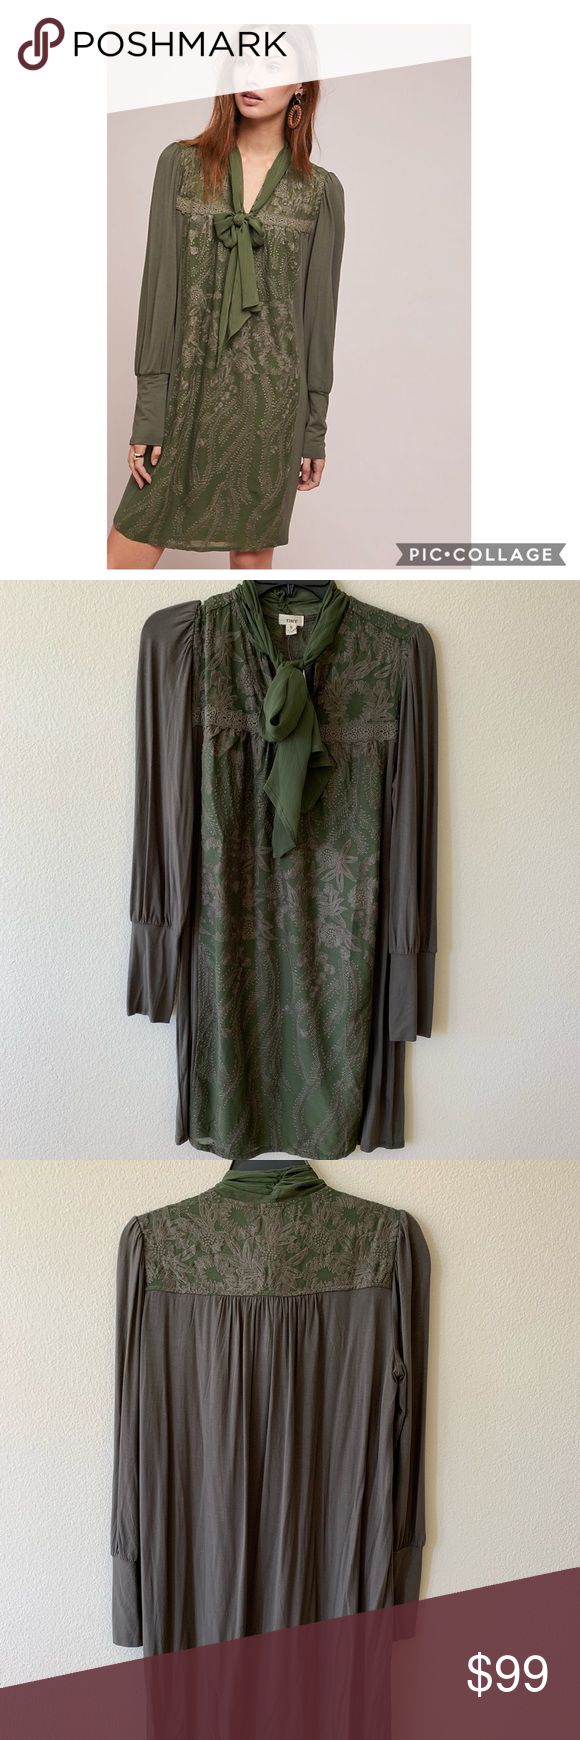 10a7e517abf NWT Top rated Anthro Isla tunic dress size small Top rated, popular  Anthropologie Isla embroidered tunic dress by TINY brand in size small.